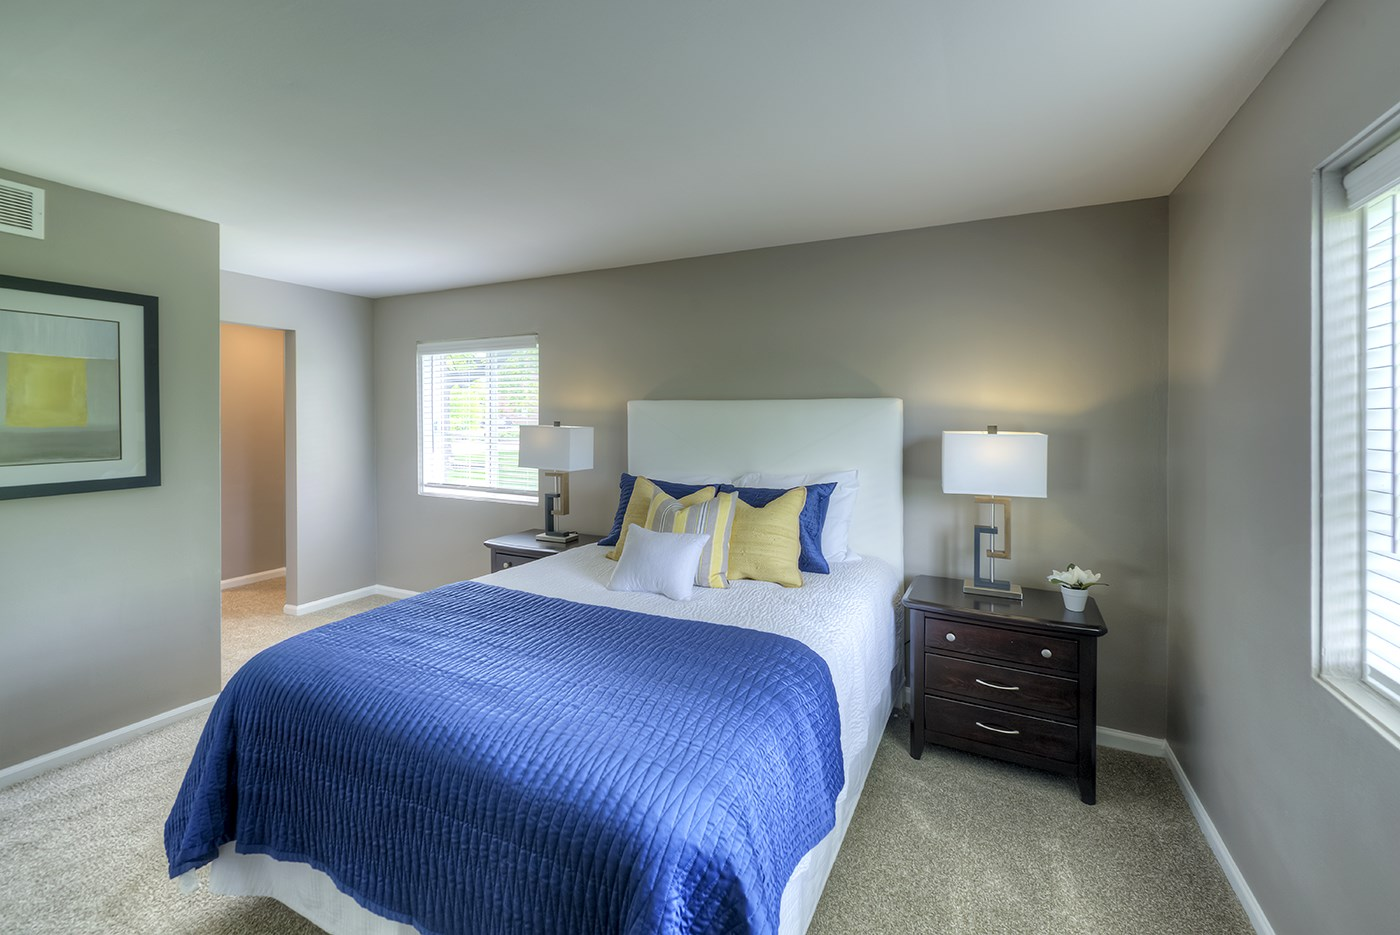 Spacious Bedroom With Comfortable Bed, at Carol Stream CrossILg, Carol Stream Illinois